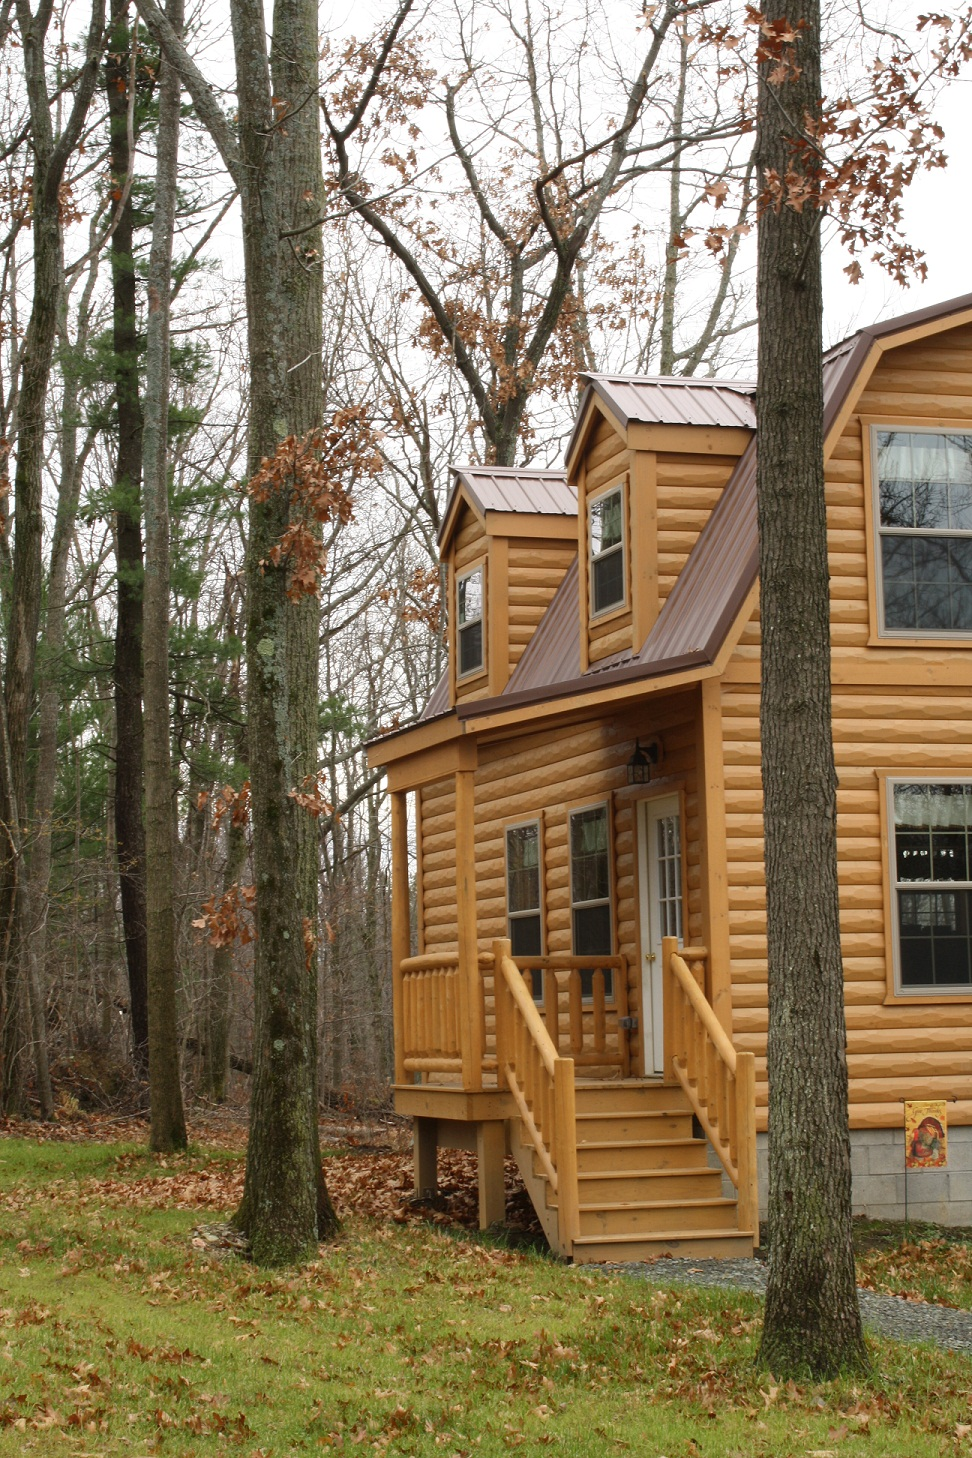 How To Play 20 Questions >> Wood-Tex Products Introduces Certified Modular Homes to Their Cabin Line